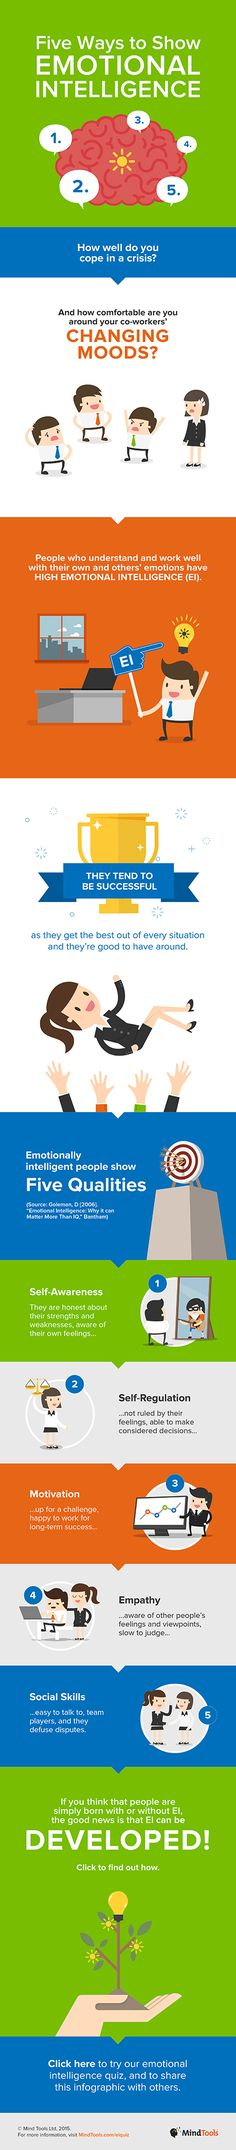 Five ways to show emotional-intelligence infographic